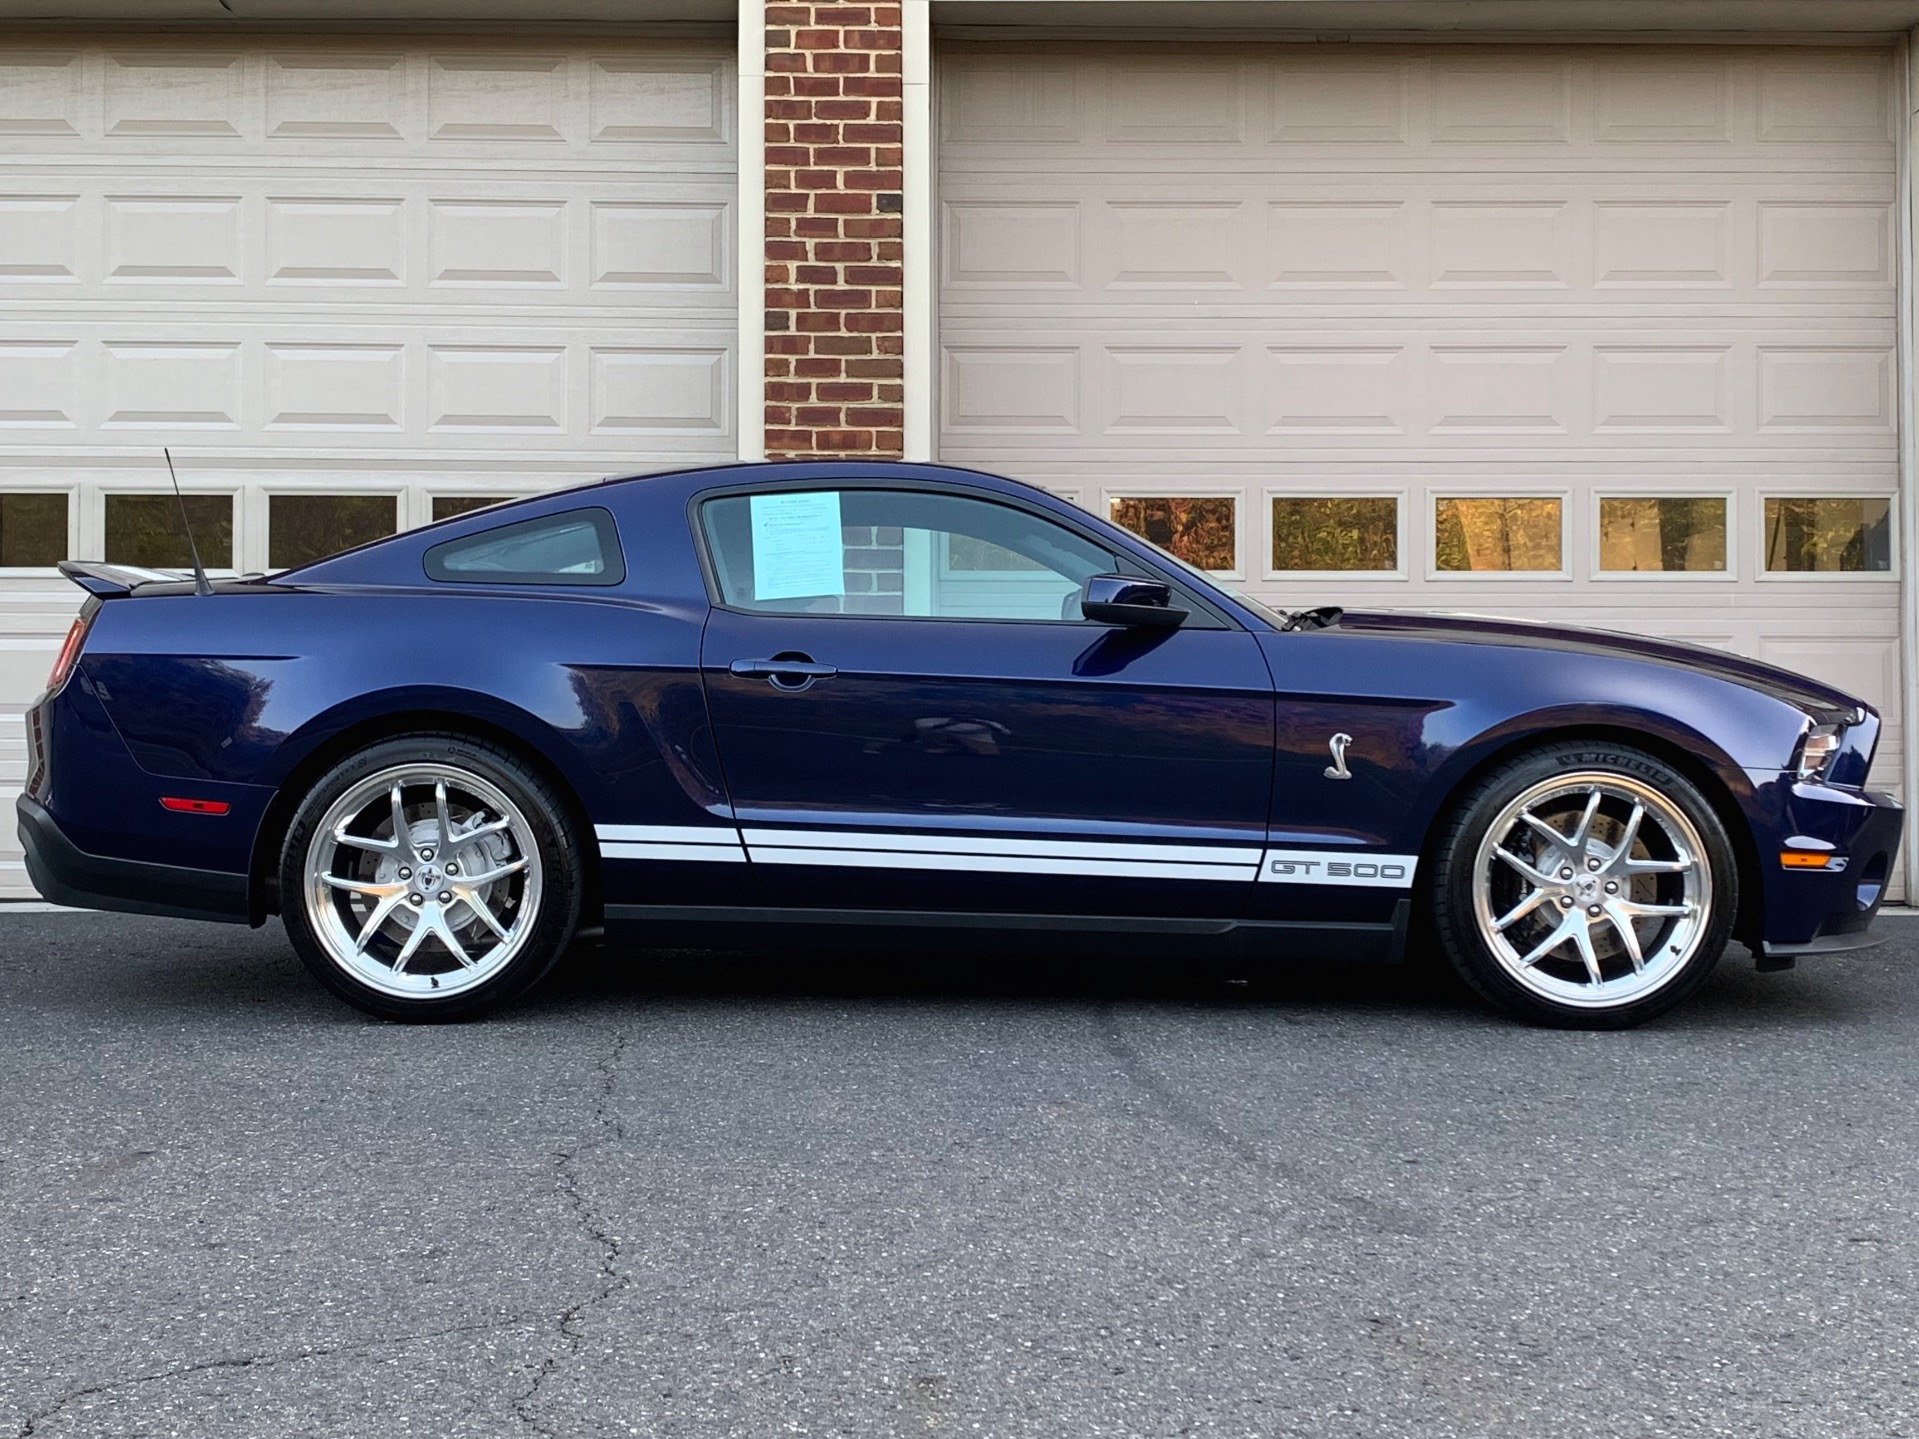 Used-2010-Ford-Shelby-GT500-Coupe-750HP-Whipple-Supercharged